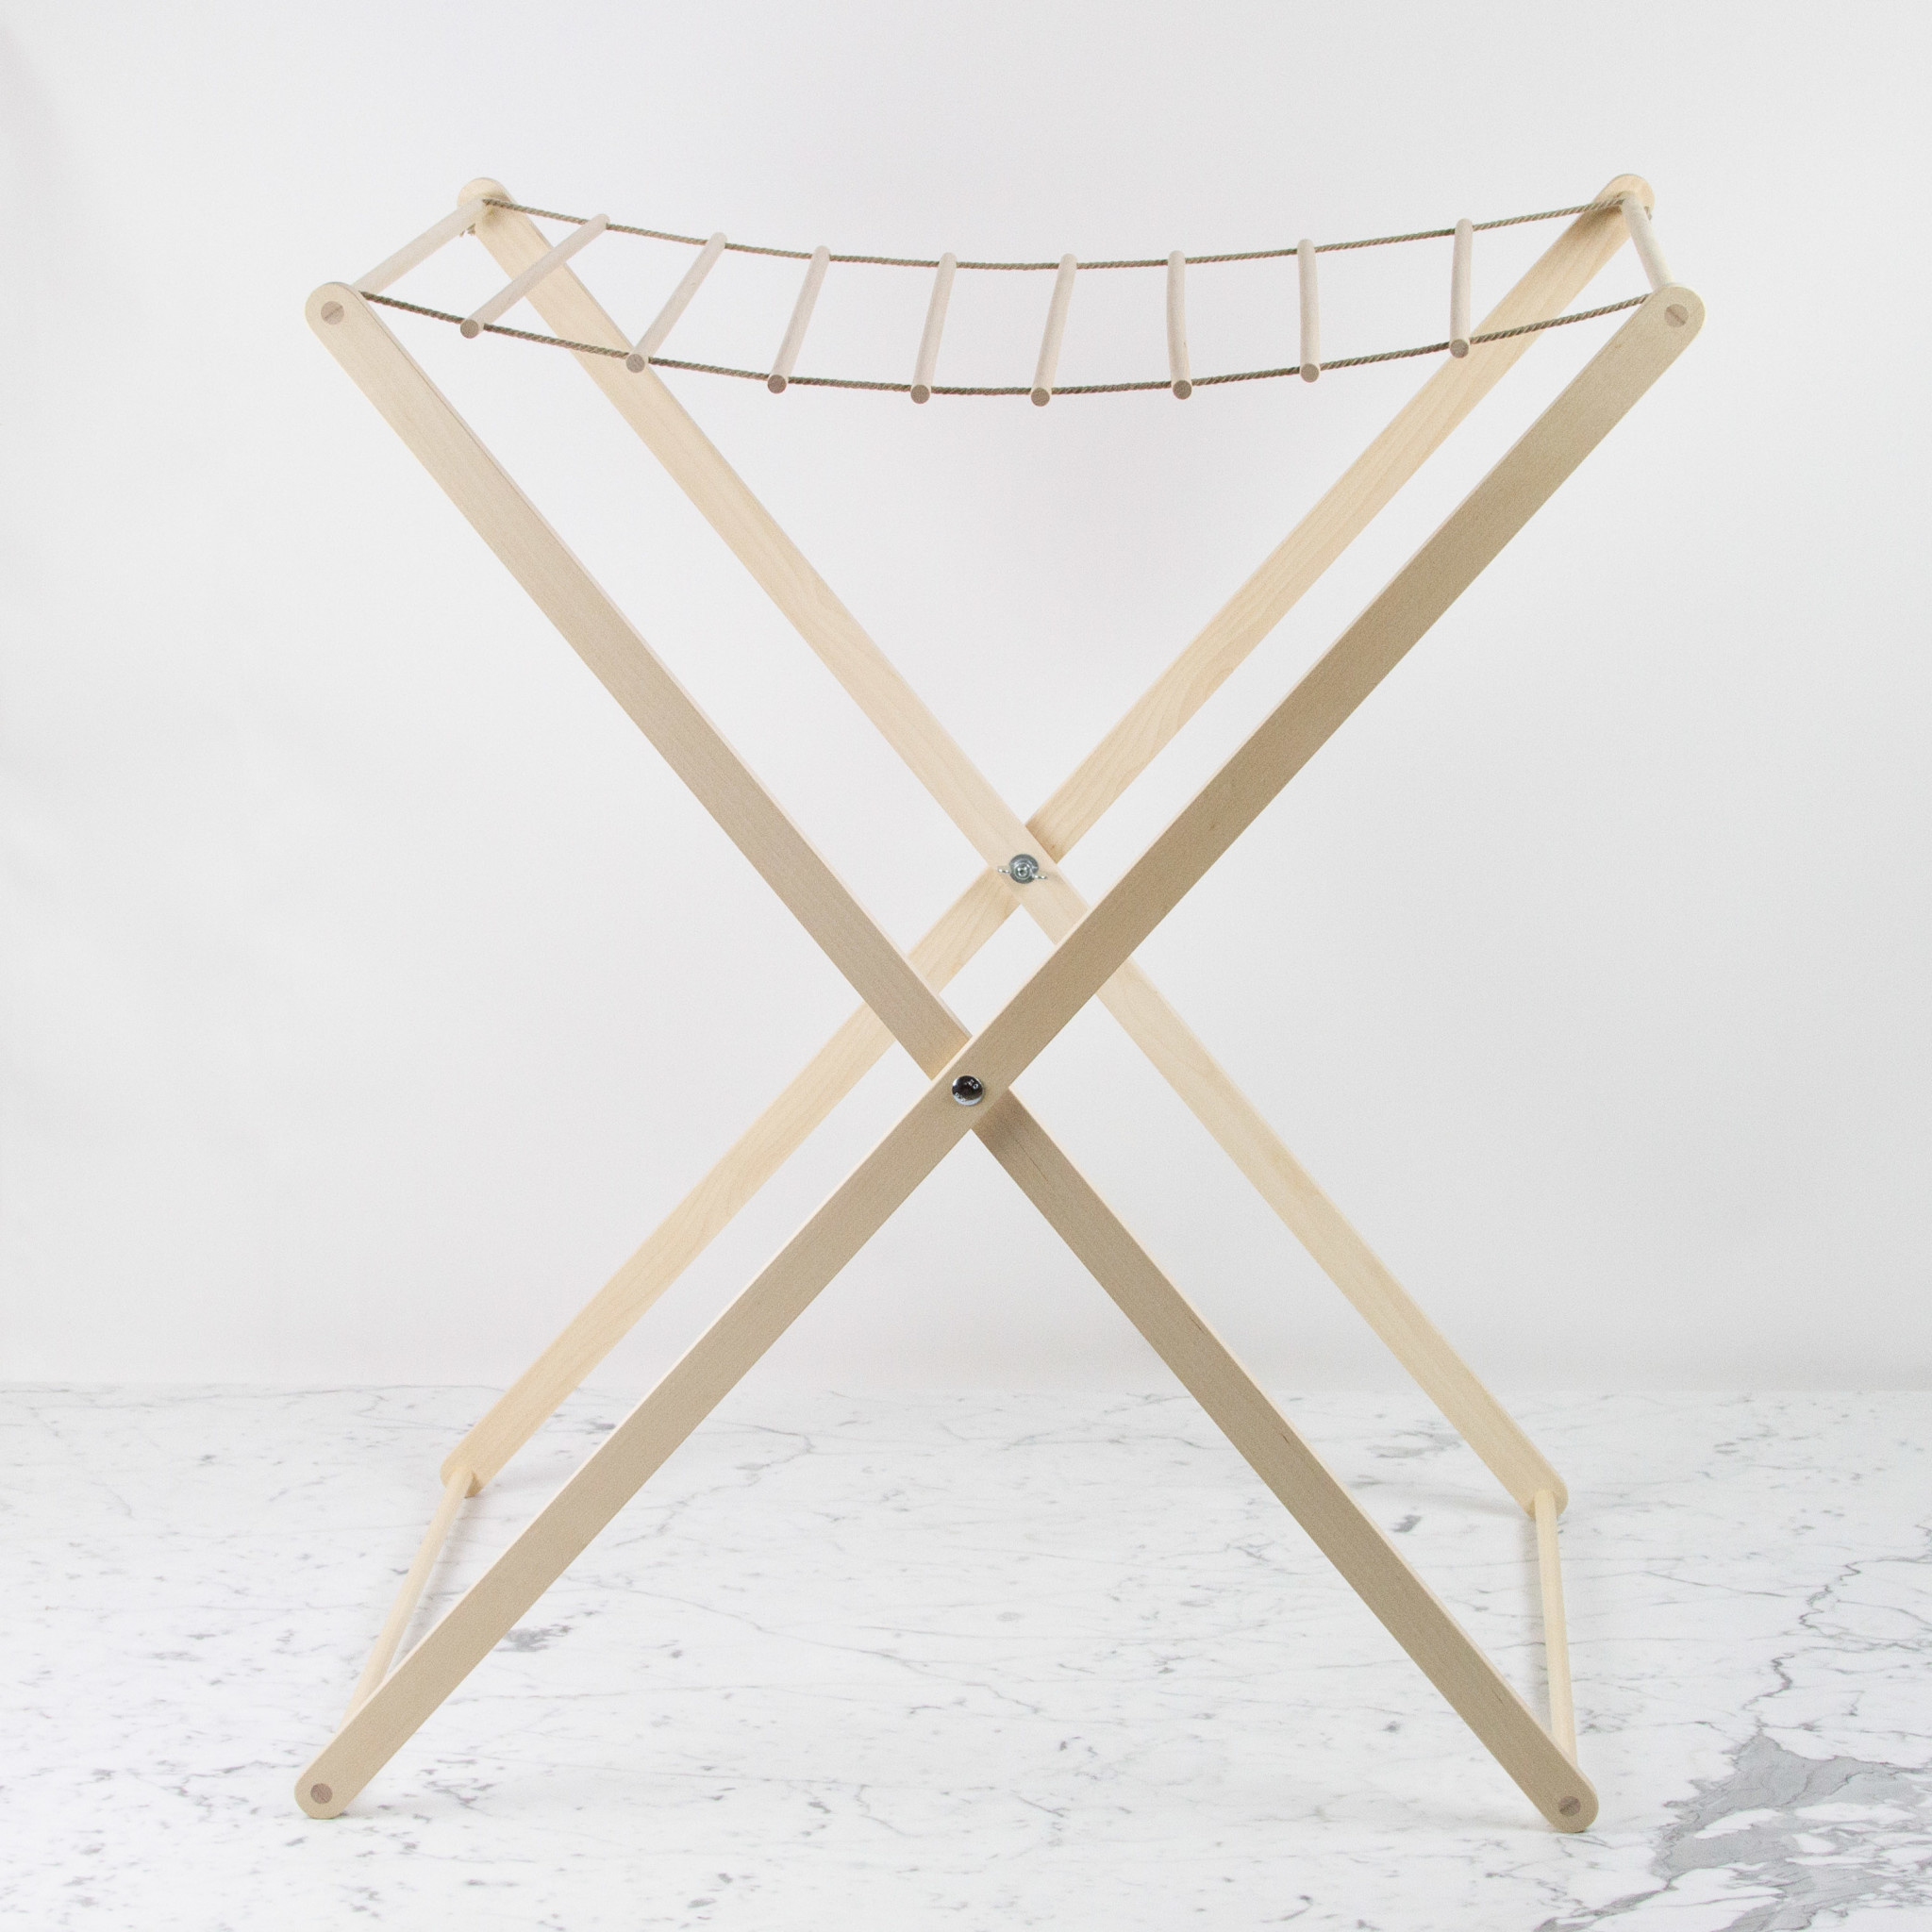 Iris Hantverk A gorgeous and ingeniously simple Swedish foldable drying solution.